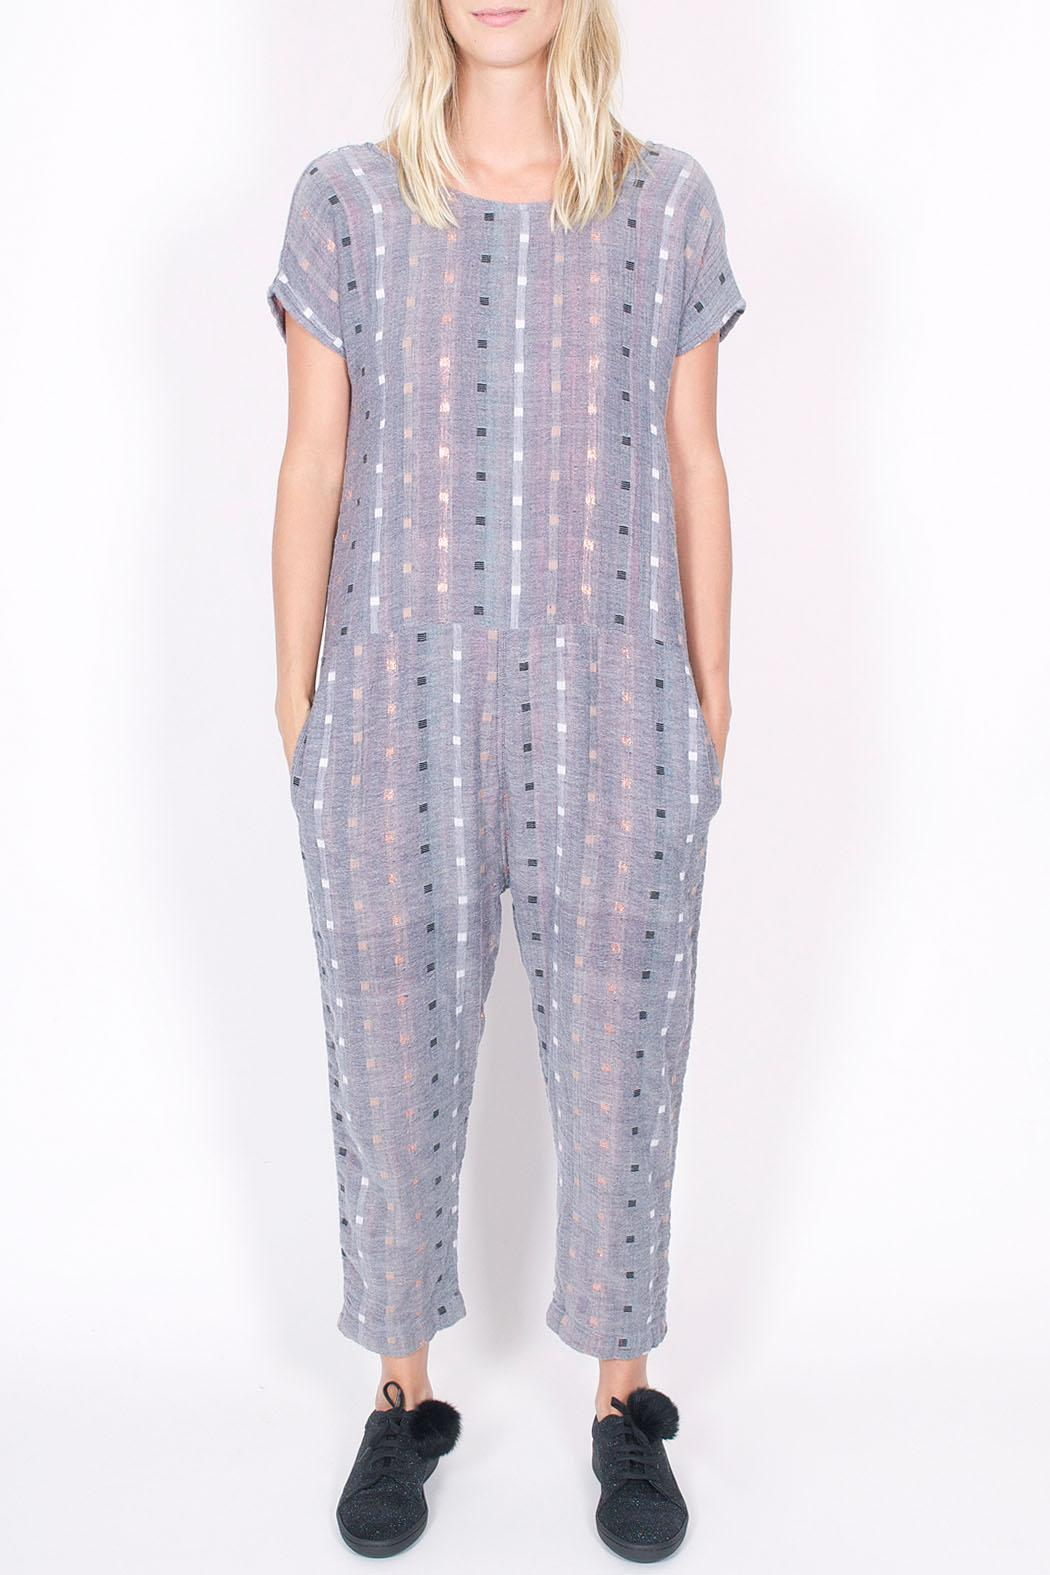 Ace Jig Printed Jumpsuit From Williamsburg By Lifecurated